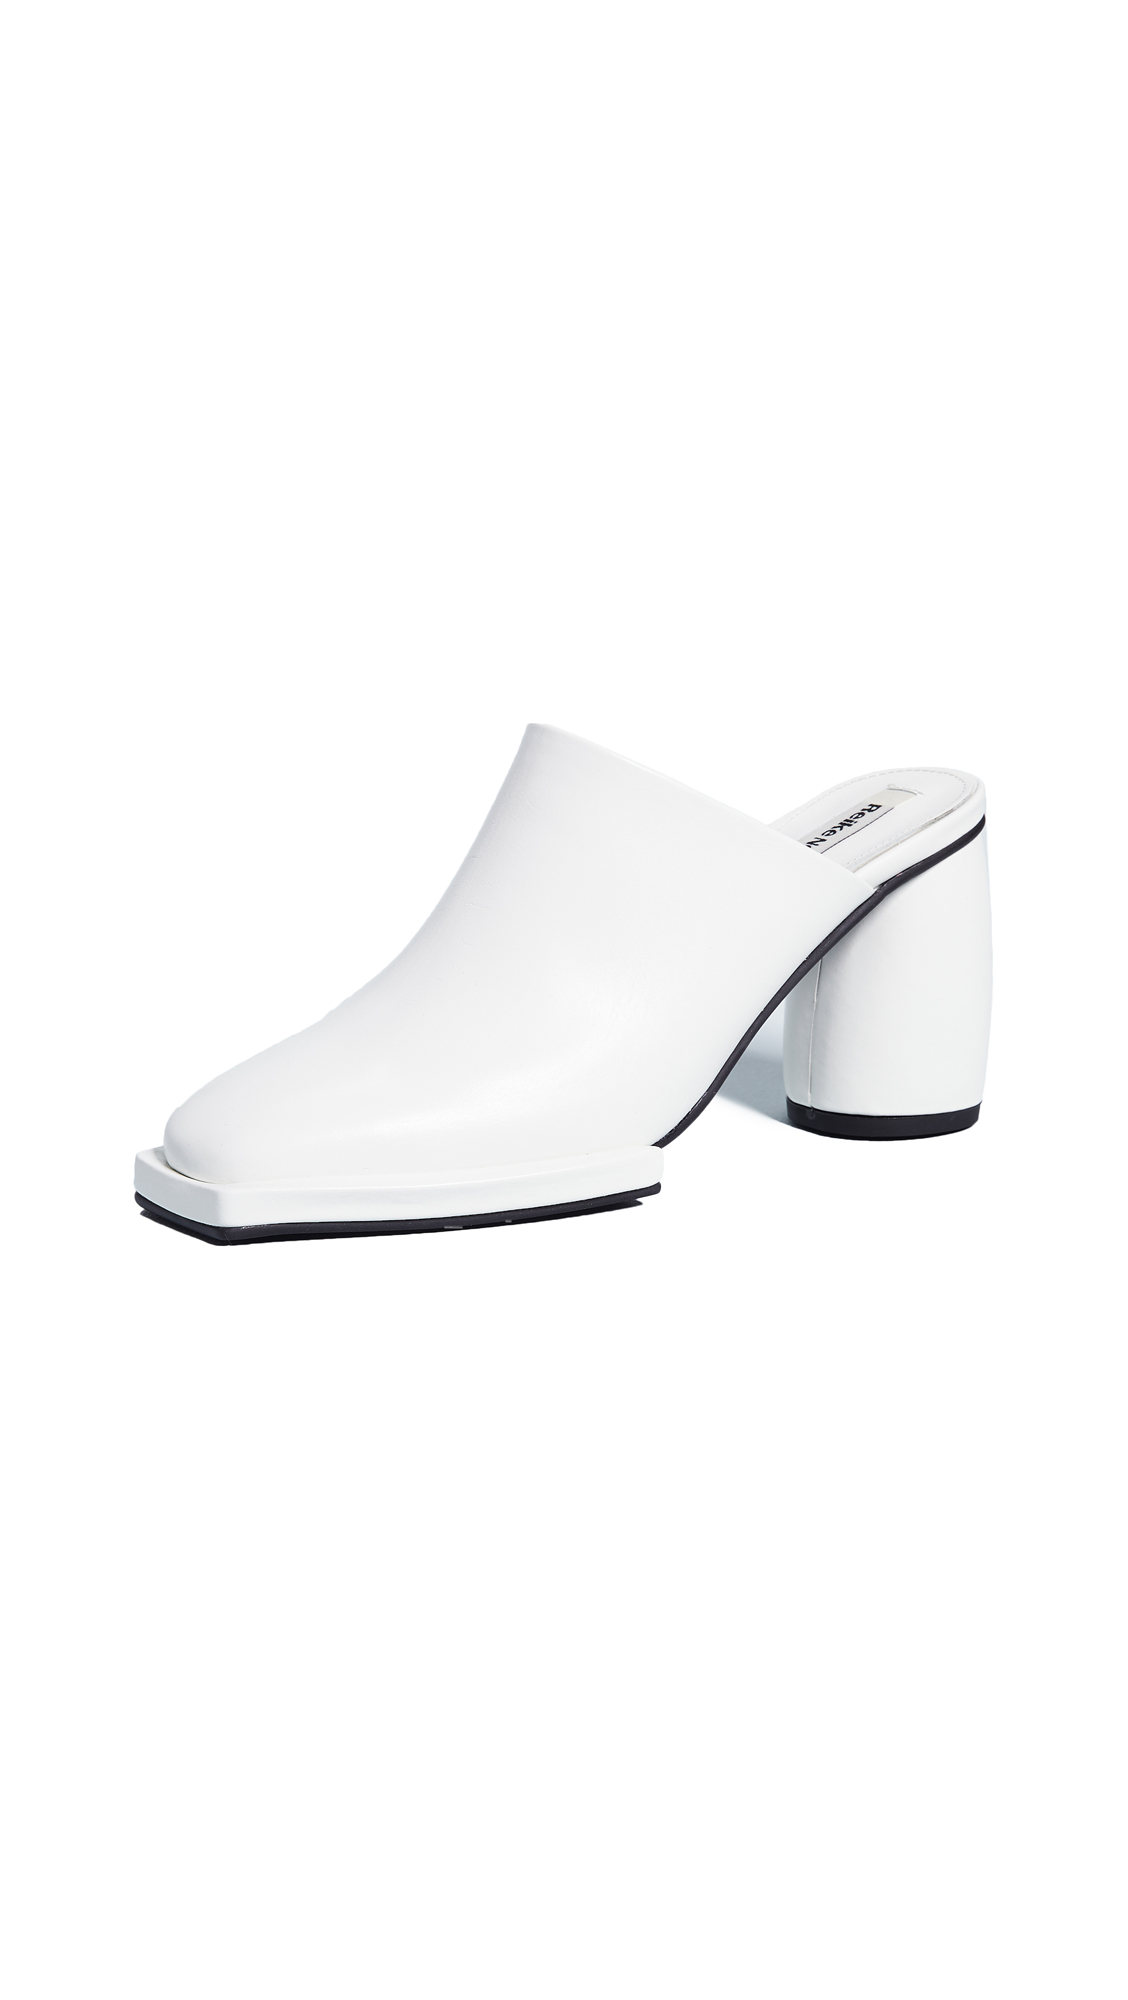 Reike Nen Pointed Toe Mules - White